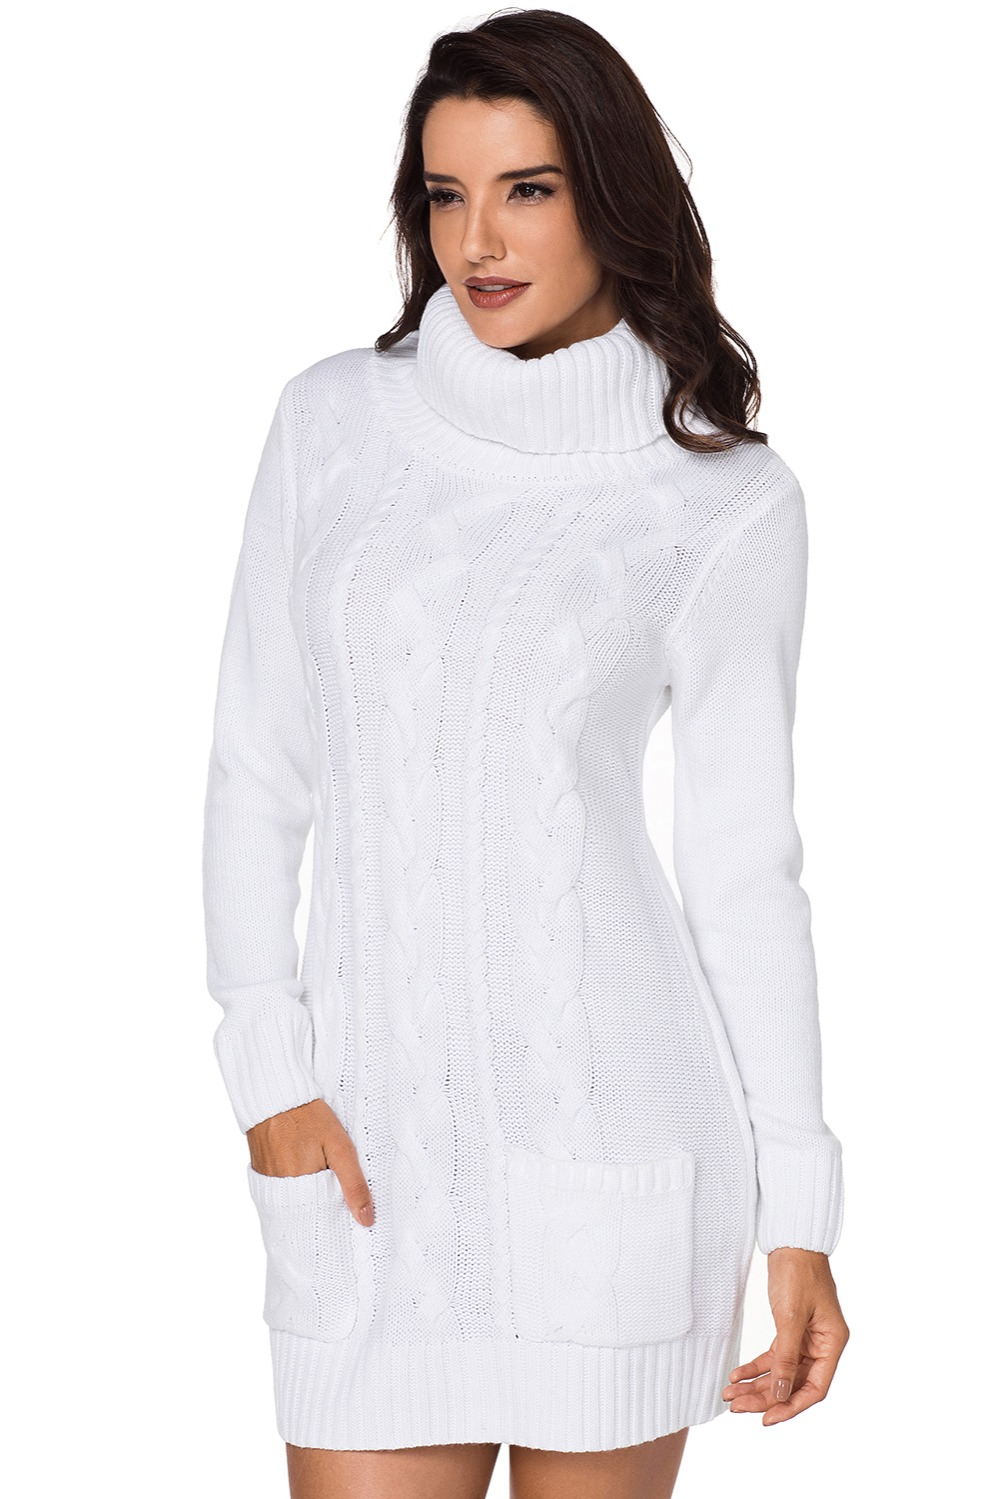 White-Cowl-Neck-Cable-Knit-Sweater-Dress-LC27836-1-3